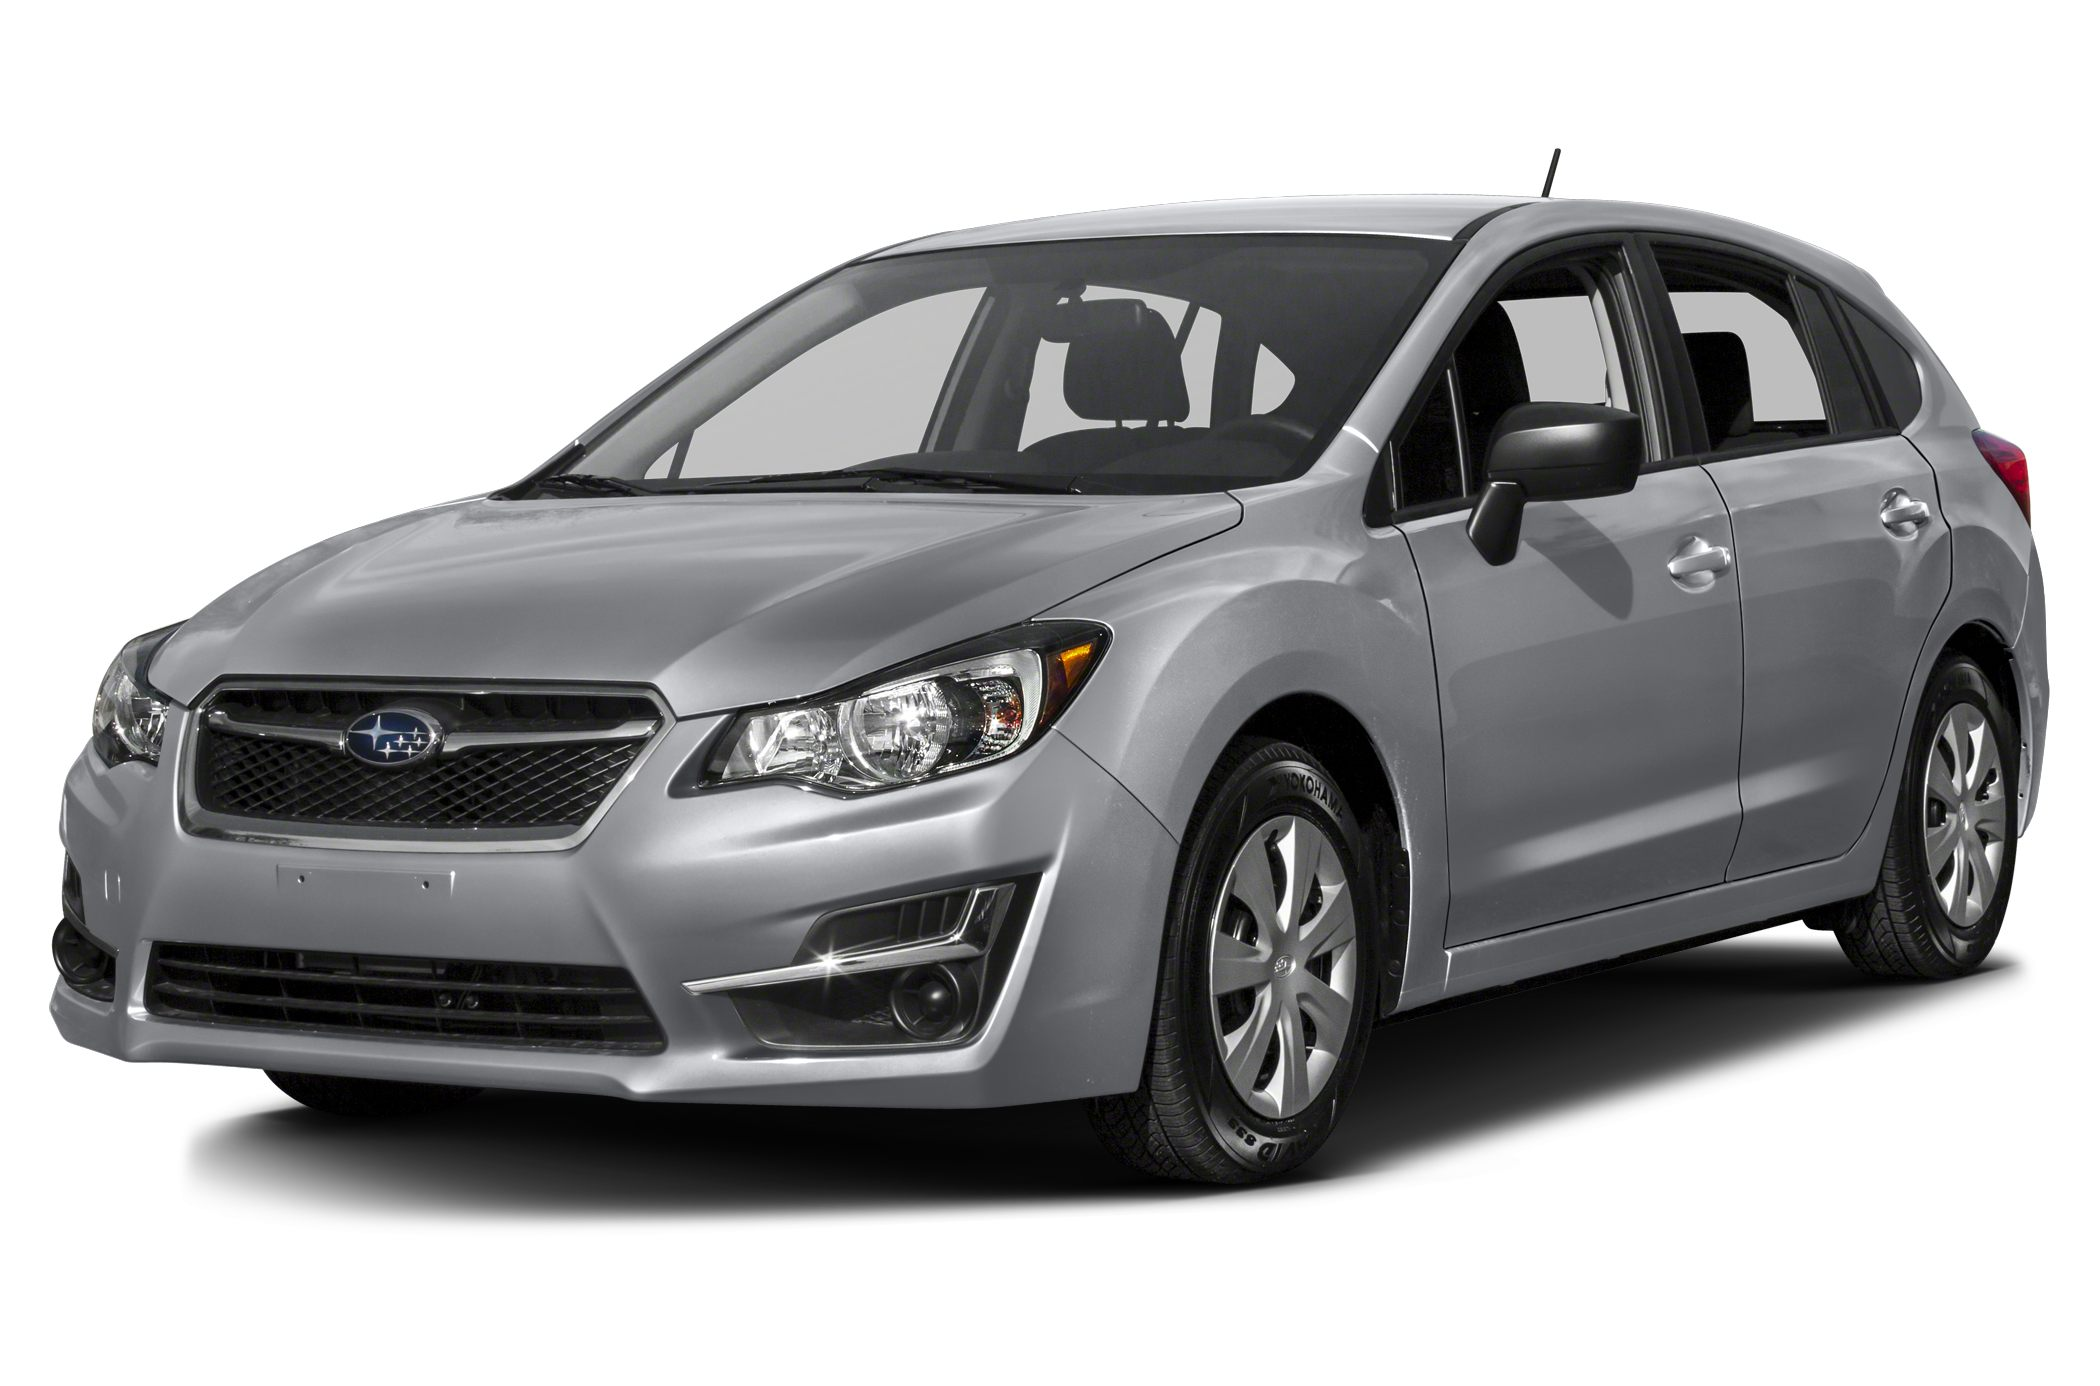 2015 Subaru Impreza 2.0i Hatchback for sale in Wakefield for $20,585 with 1 miles.